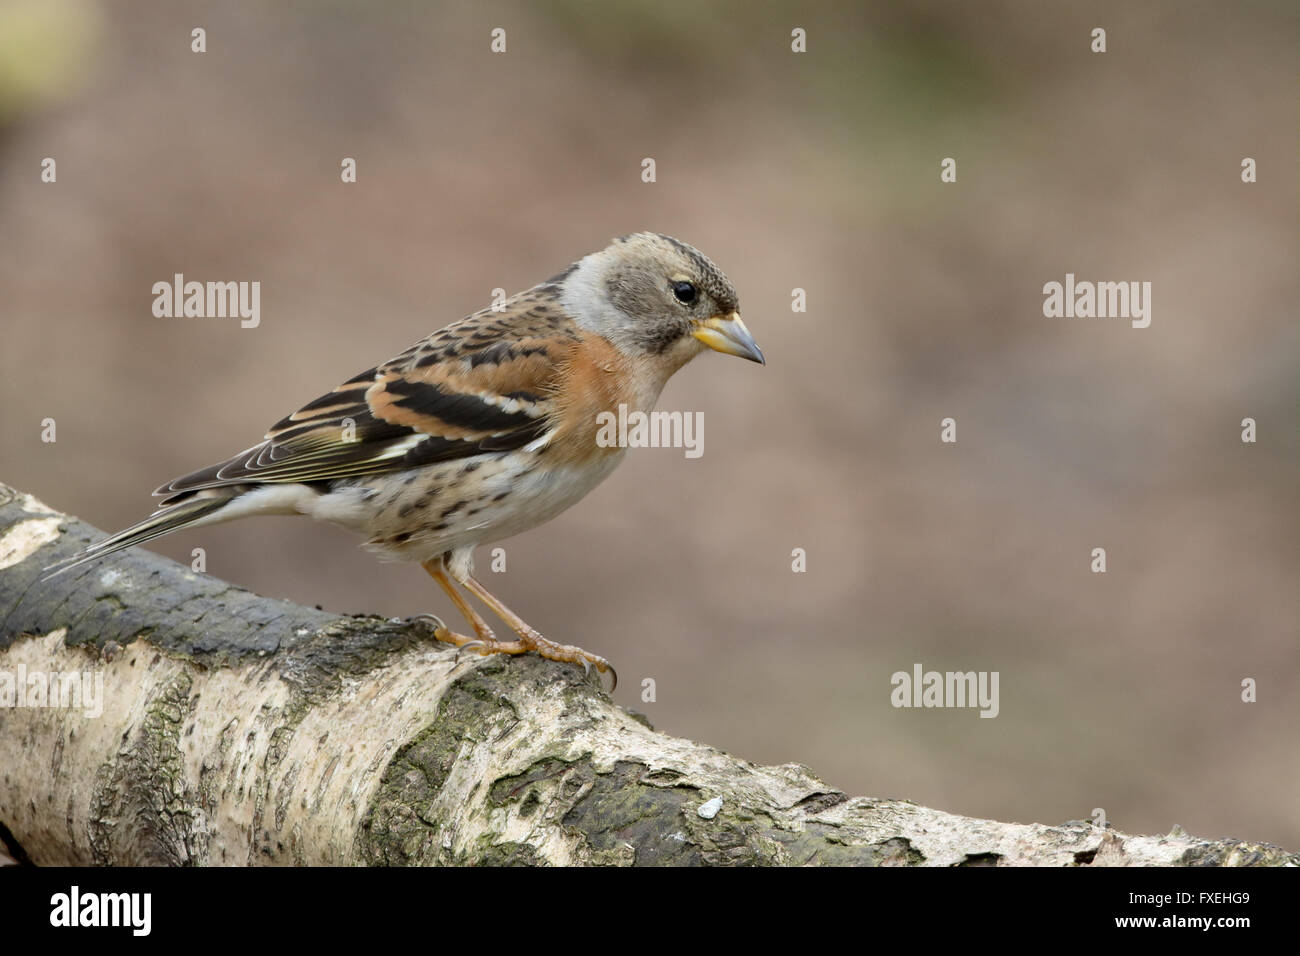 Brambling,  Fringilla montifringilla, single female on branch, Warwickshire, April 2016 - Stock Image